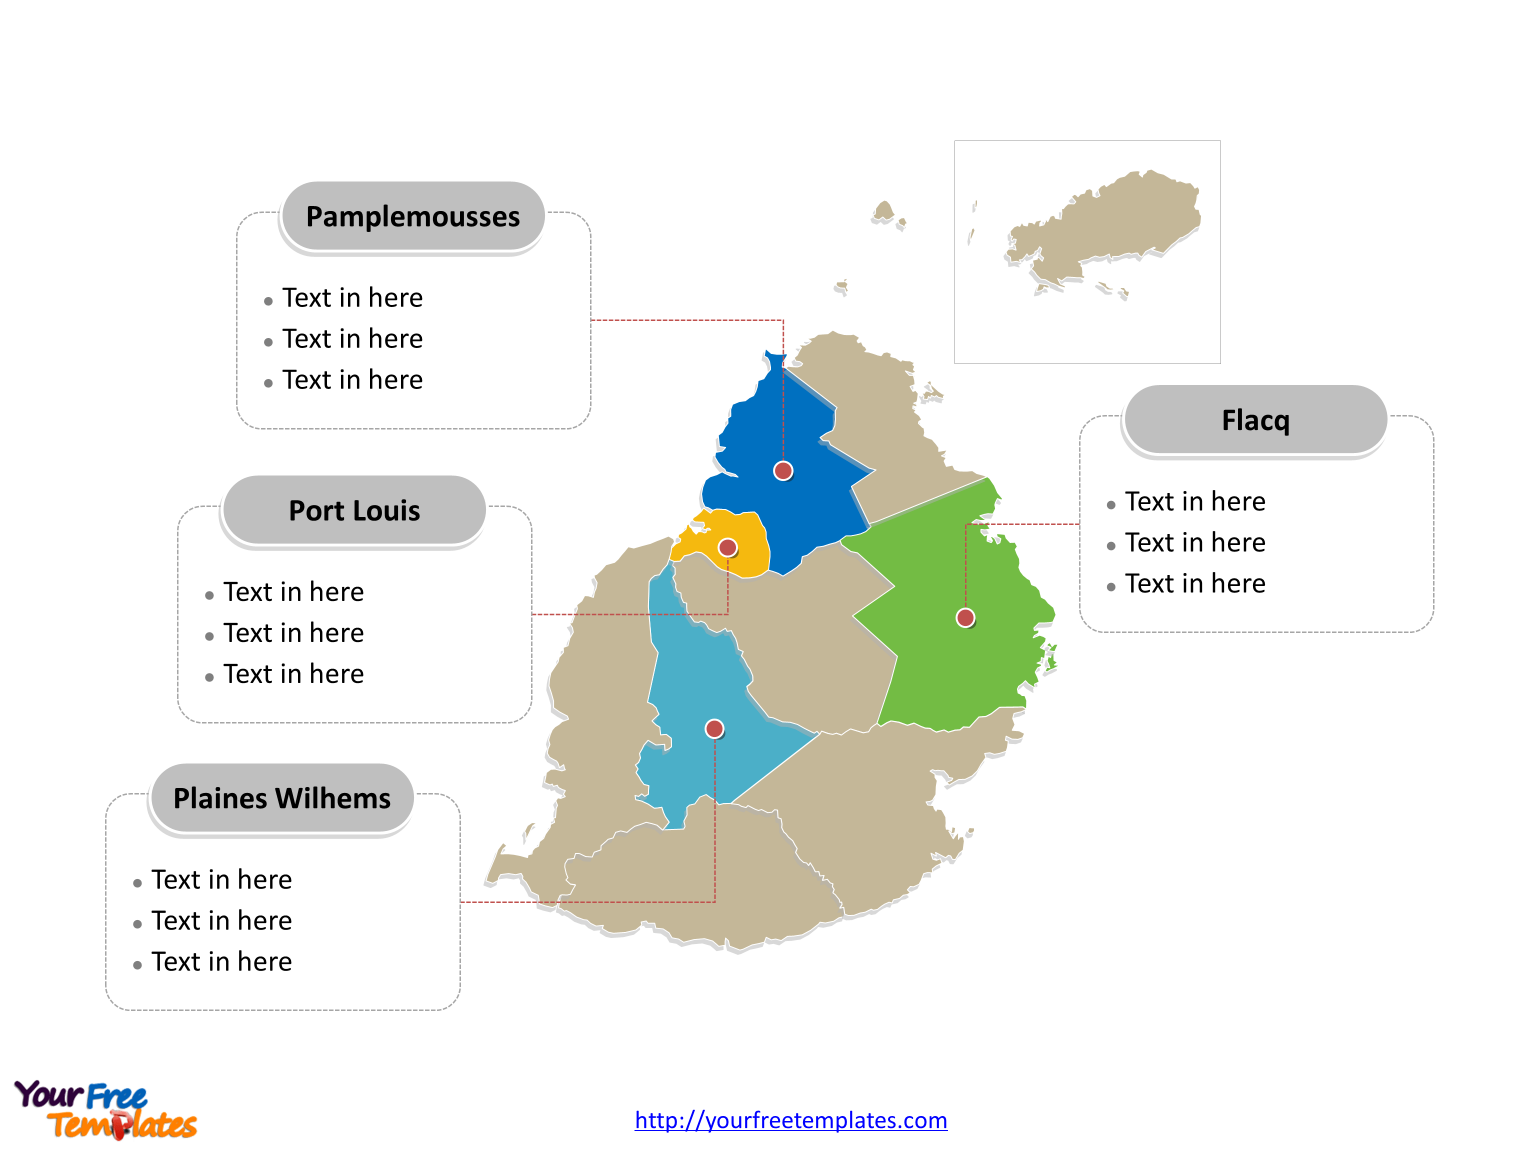 Free Mauritius Map Template Free PowerPoint Templates - Political map of mauritius